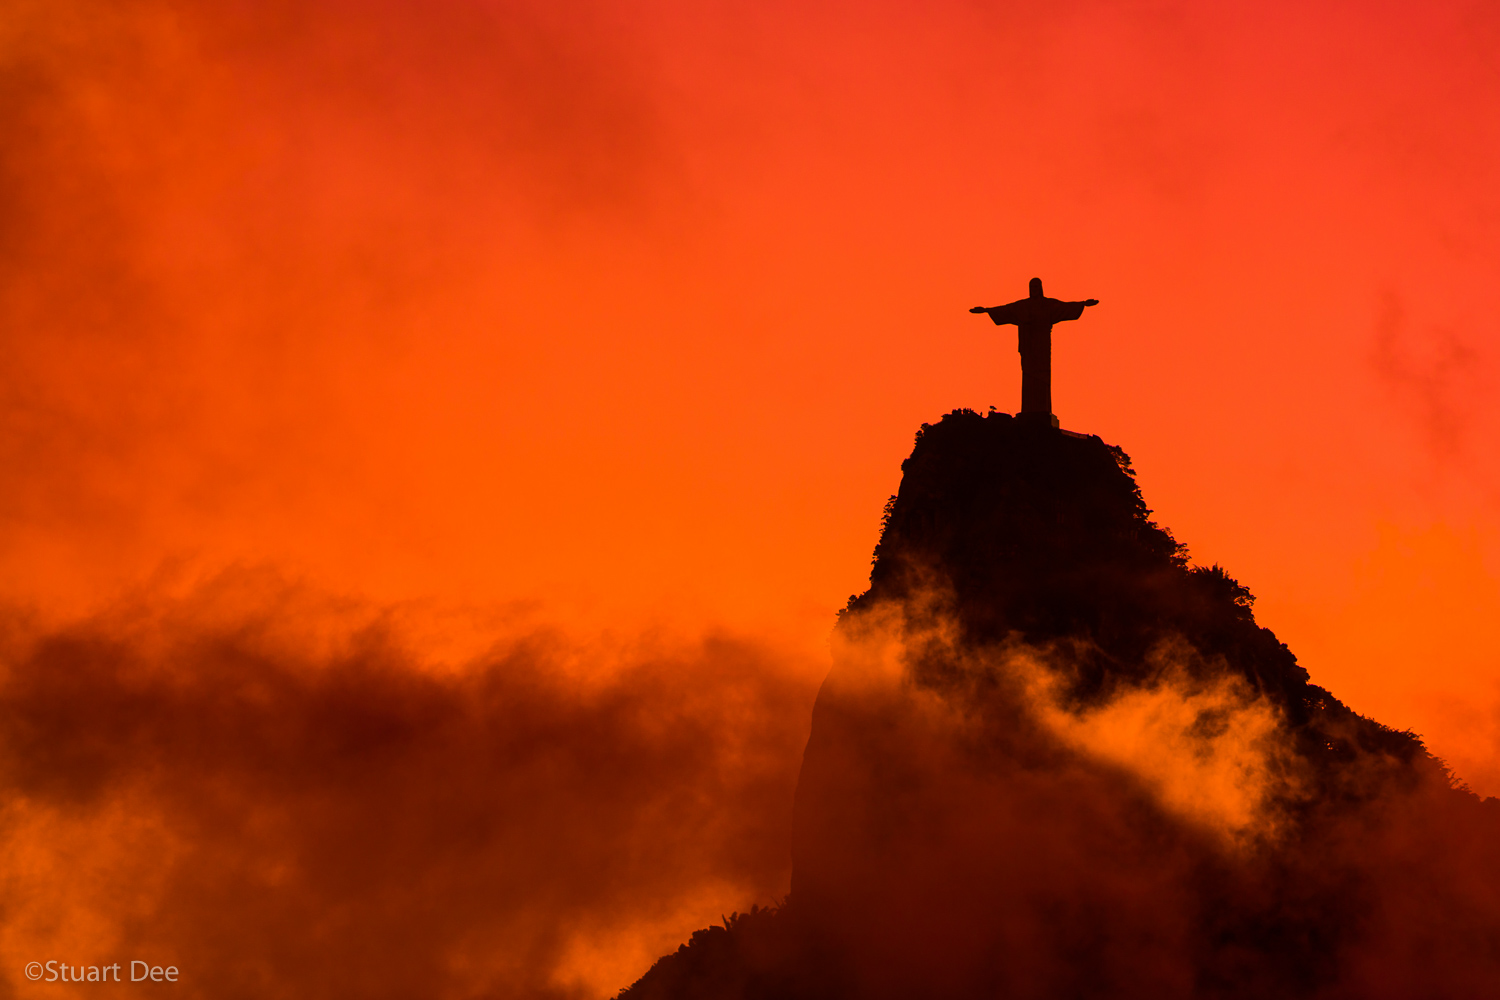 Christ the Redeemer statue, (Cristo Redentor), at sunset, with misty clouds, atop Corcovado, Rio de Janeiro, Brazil. This statue is one of the most well-known symbols of Rio.